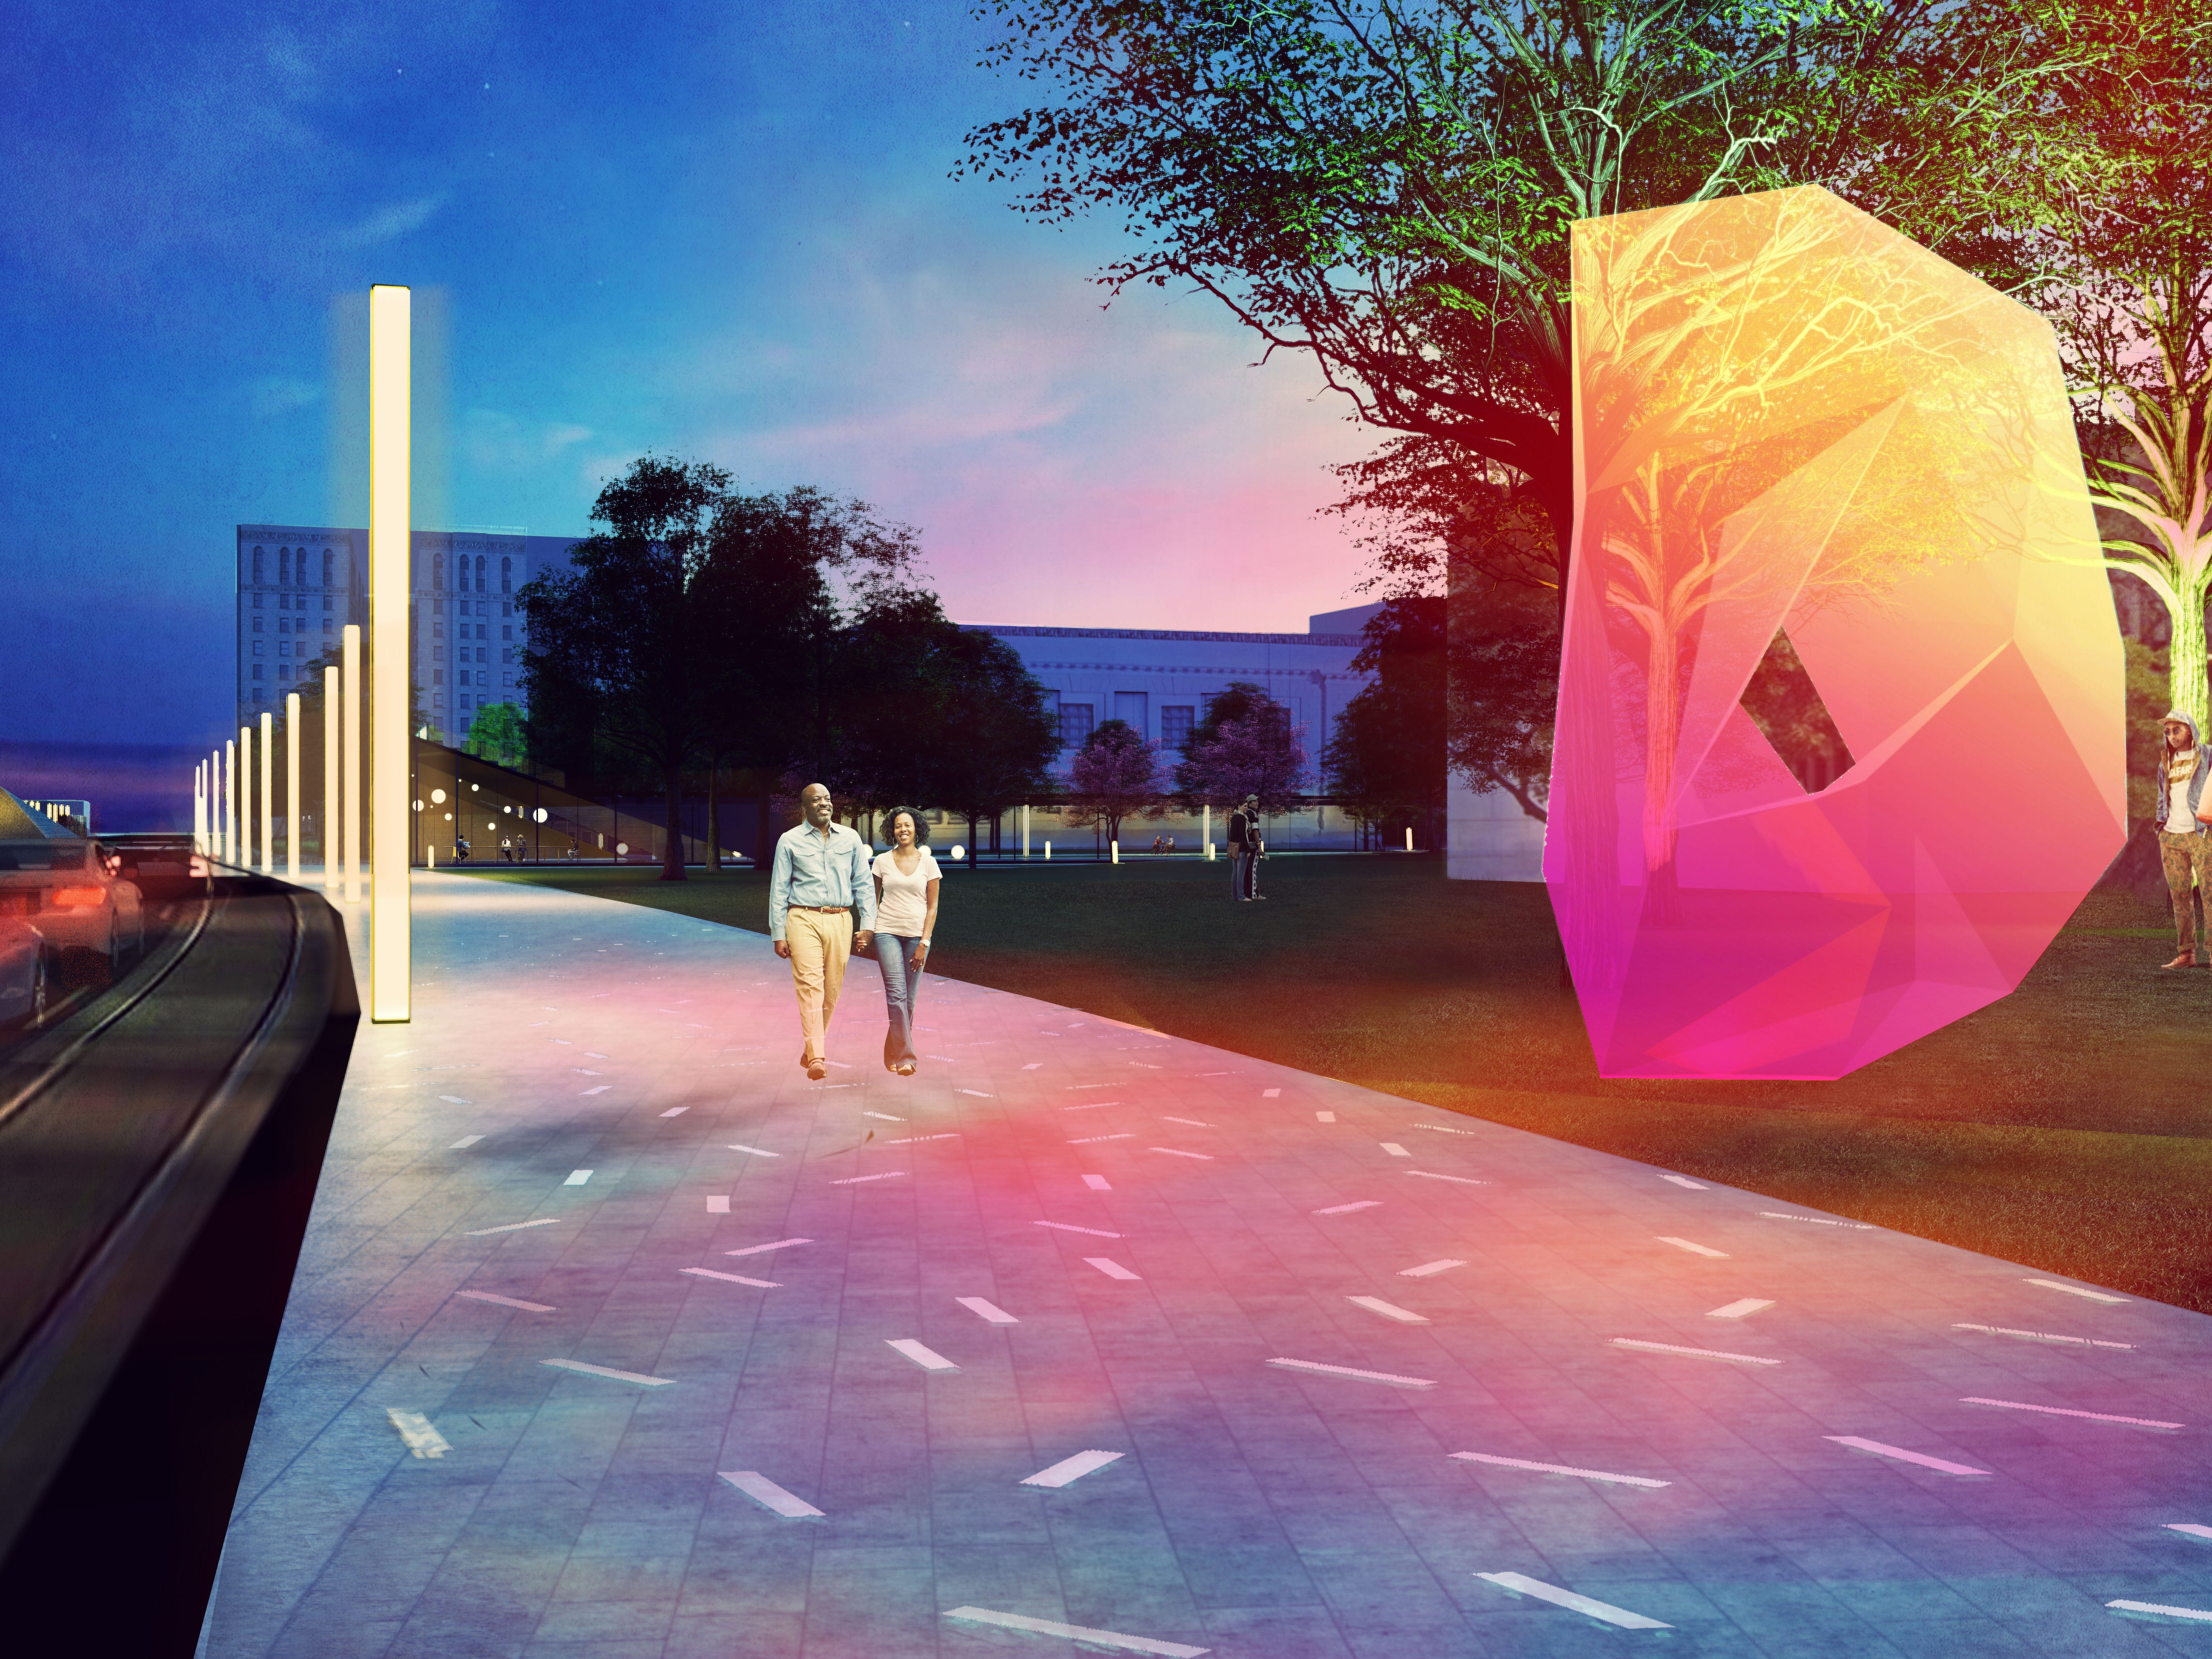 The finalist team Ten X Ten proposes a lighted path in front of the Woodward entrance of the Detroit Institute of Arts.